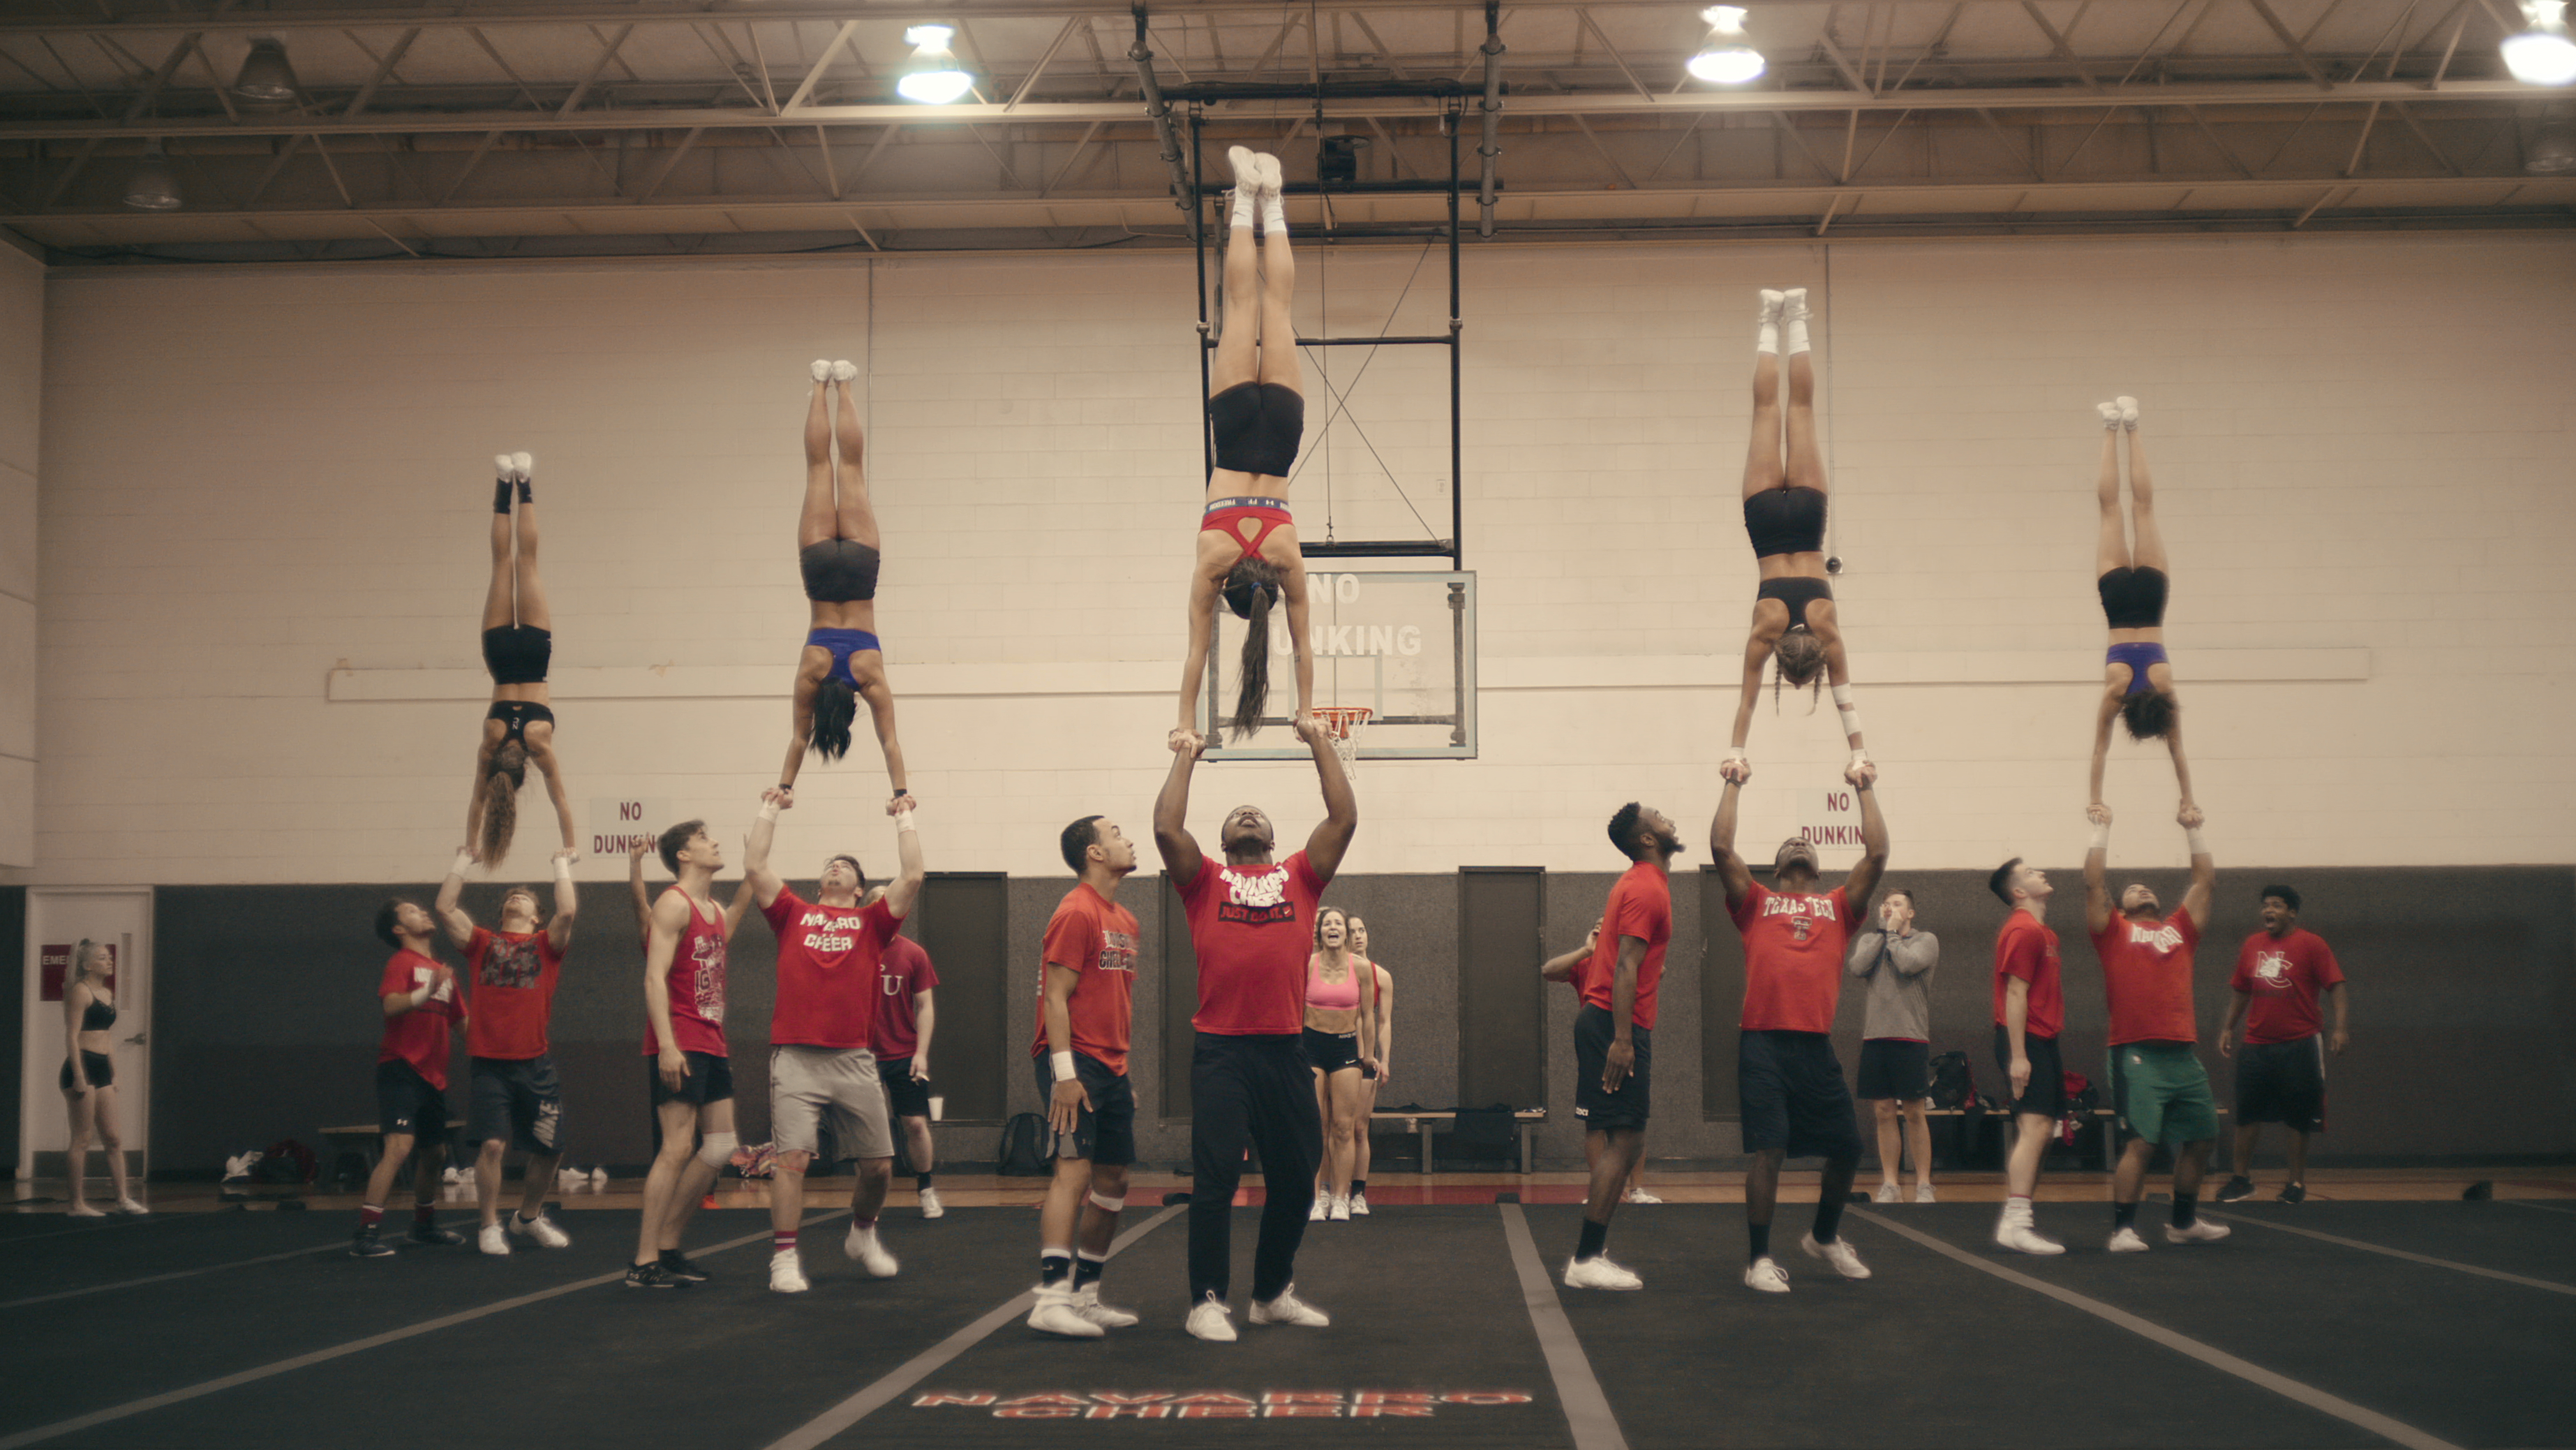 The Navarro cheerleaders practice their routine in the docuseries 'Cheer.'